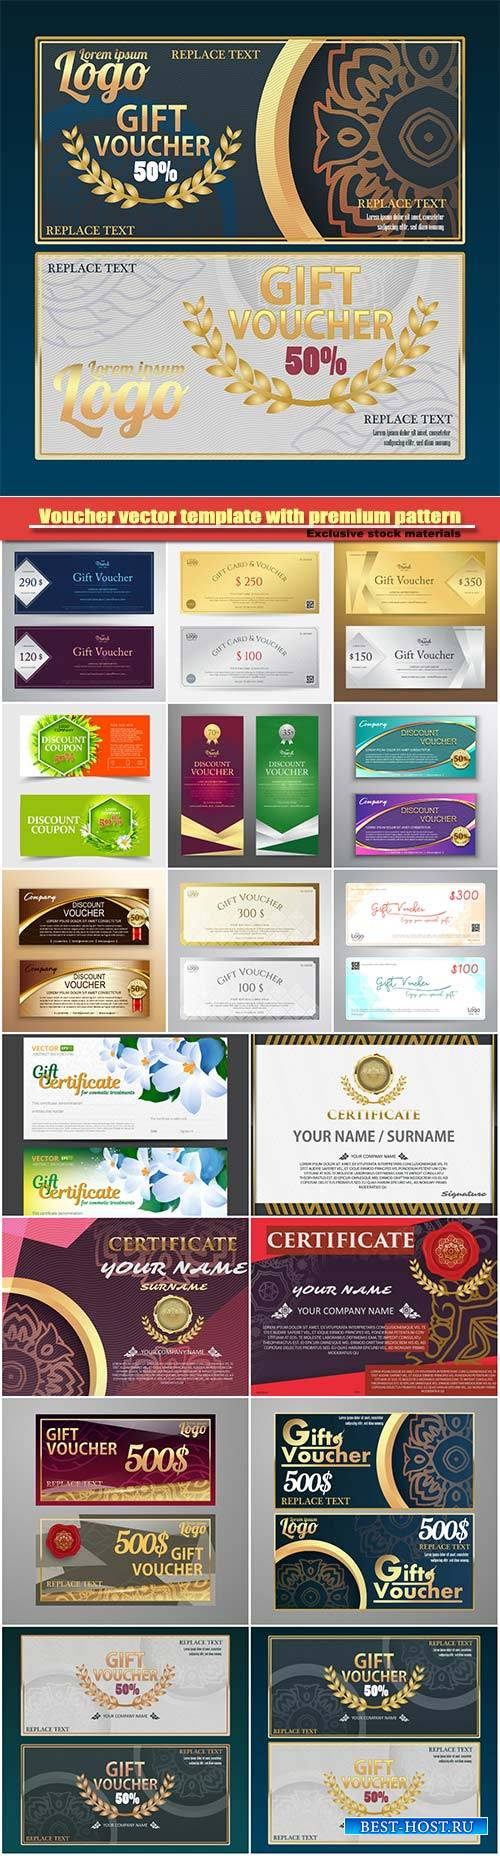 Voucher vector template with premium vintage pattern